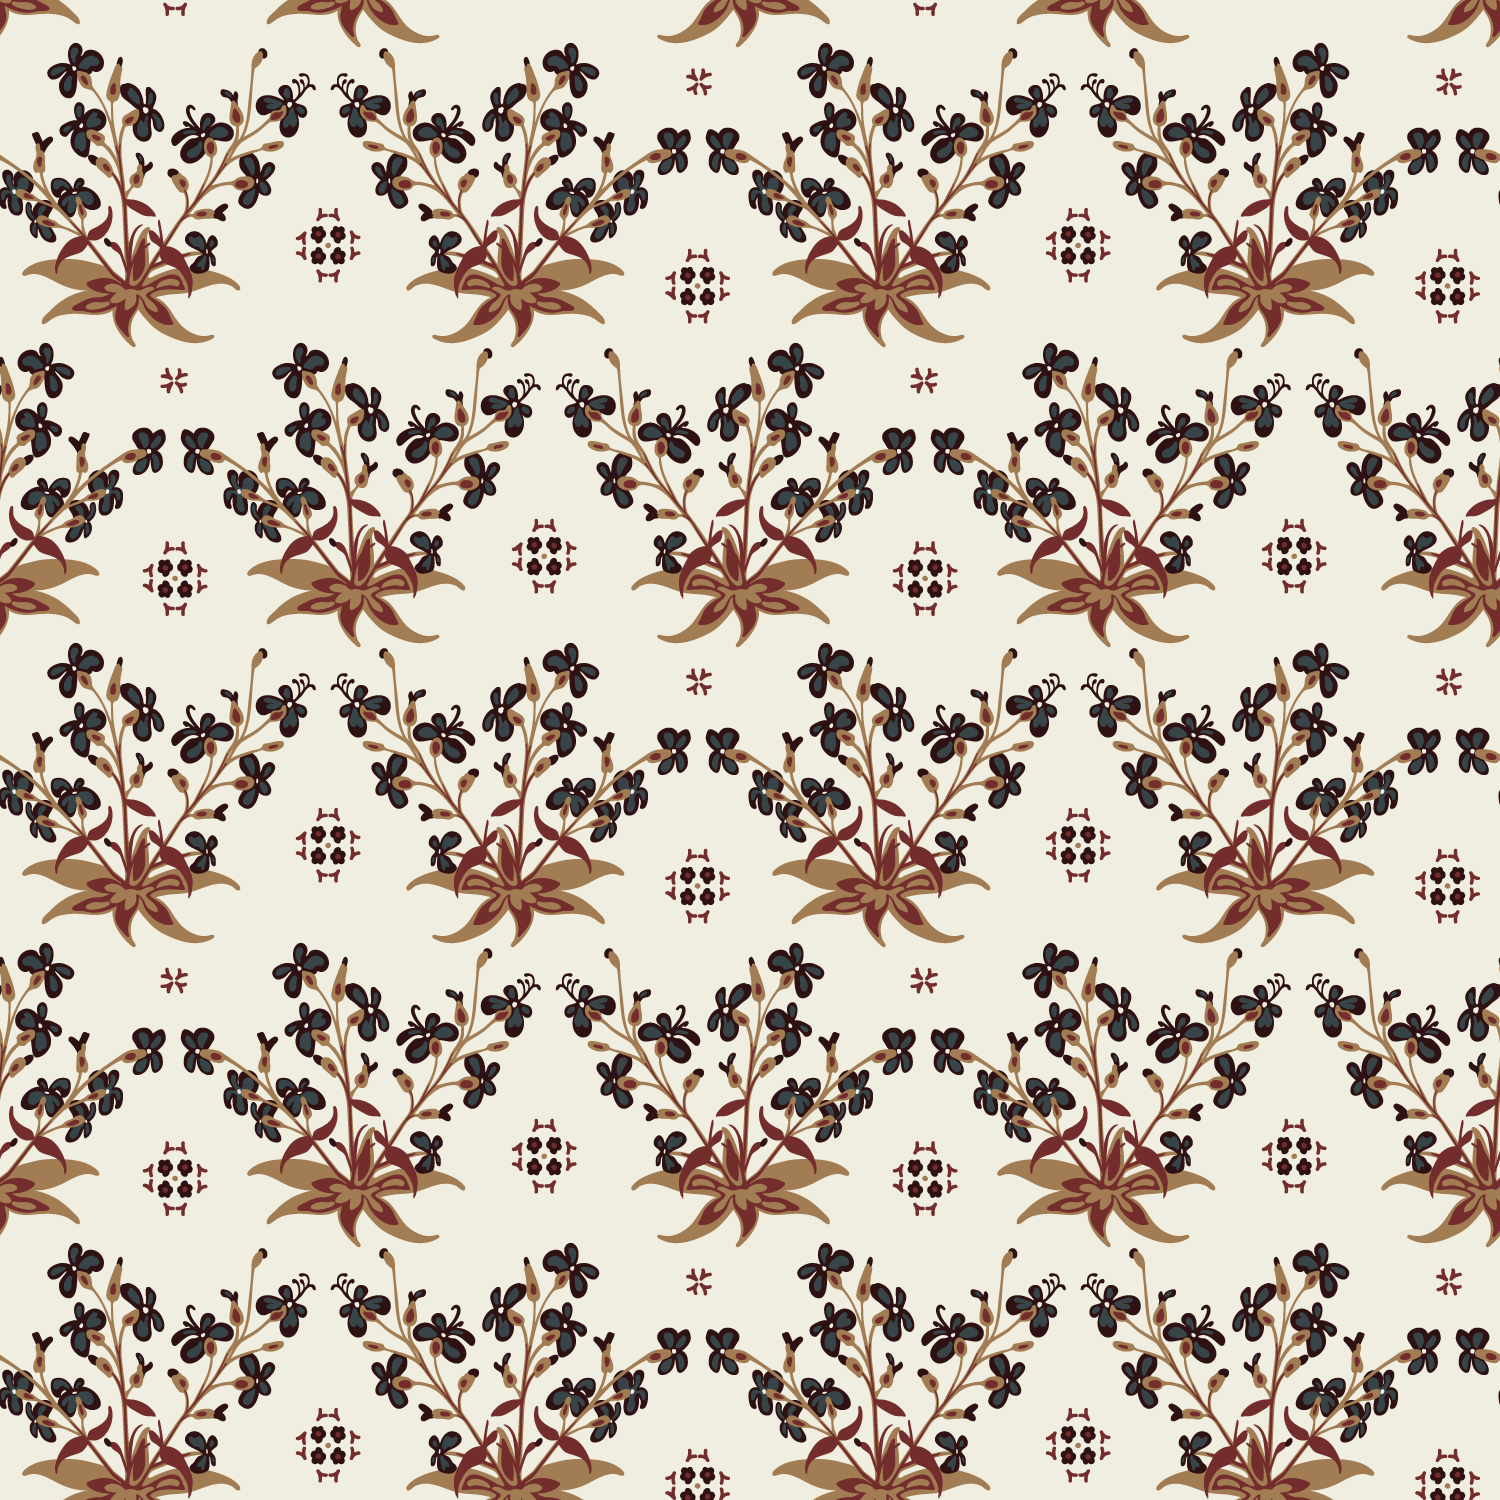 tapestry-flower-large.png